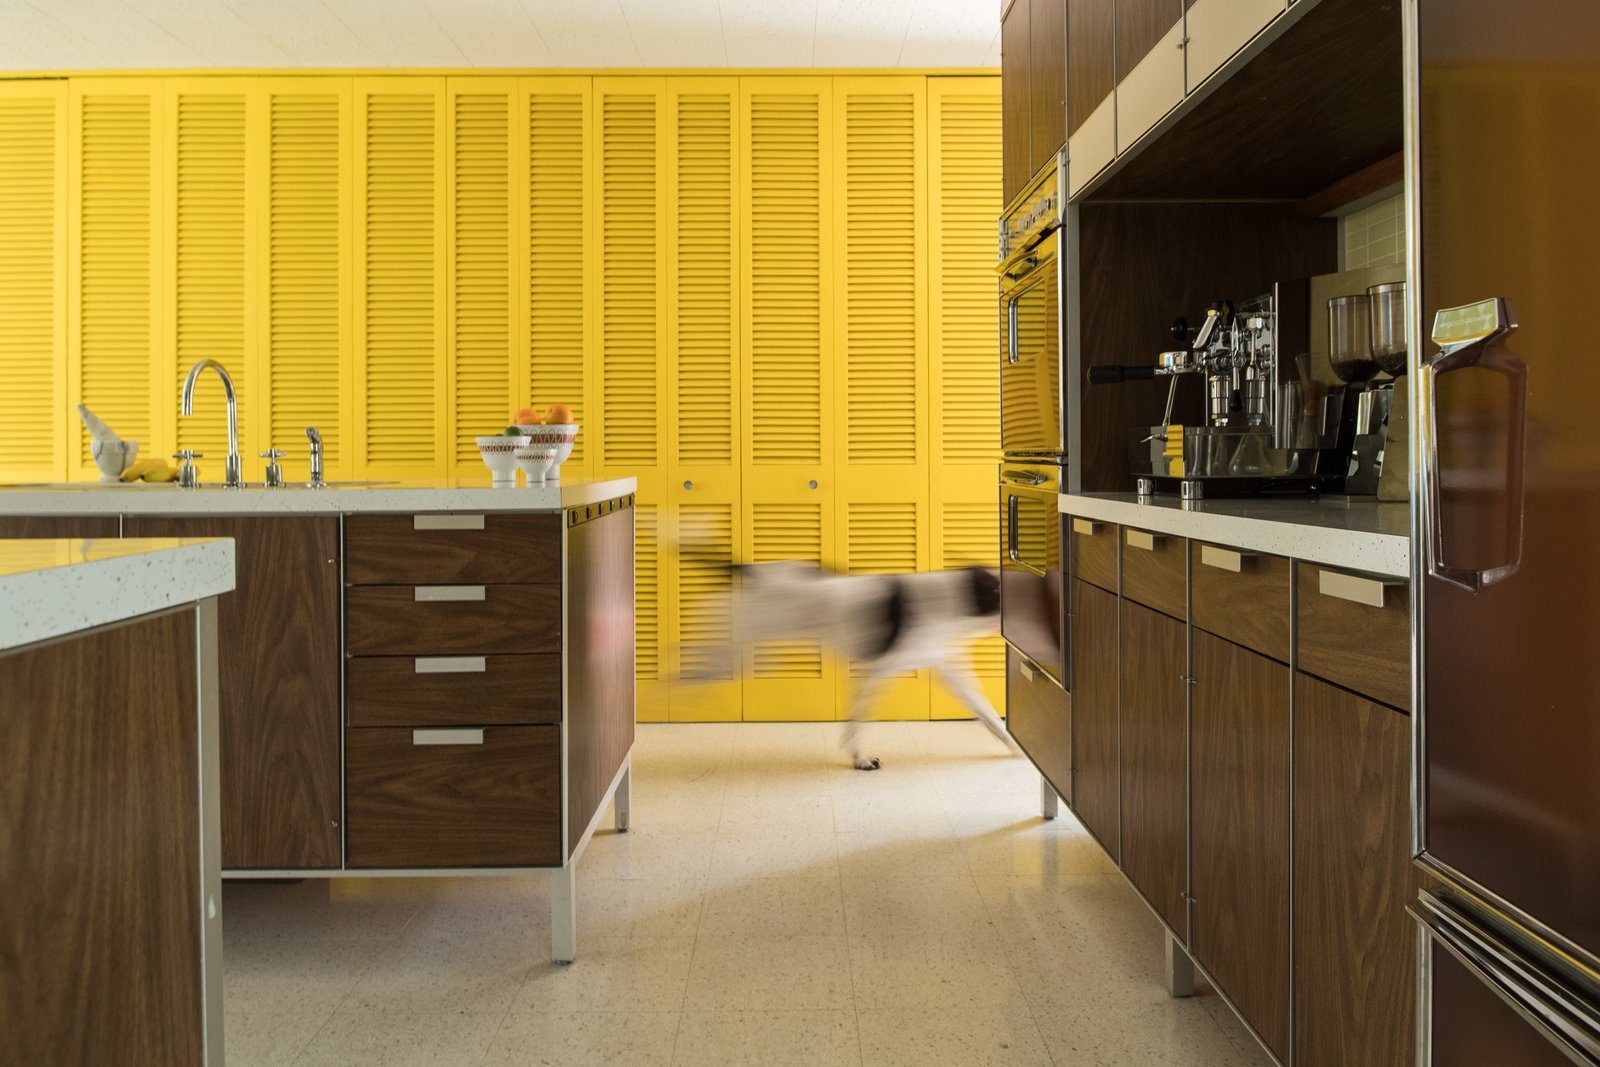 Bright closet doors provide storage space and a healthy dose of color from various vantage points. Tagged: Kitchen and Terrazzo Floor.  Photo 7 of 14 in A Rare Midcentury Prefab Looks Just Like it Did in 1958—Down to the Knoll and Paul McCobb Interiors